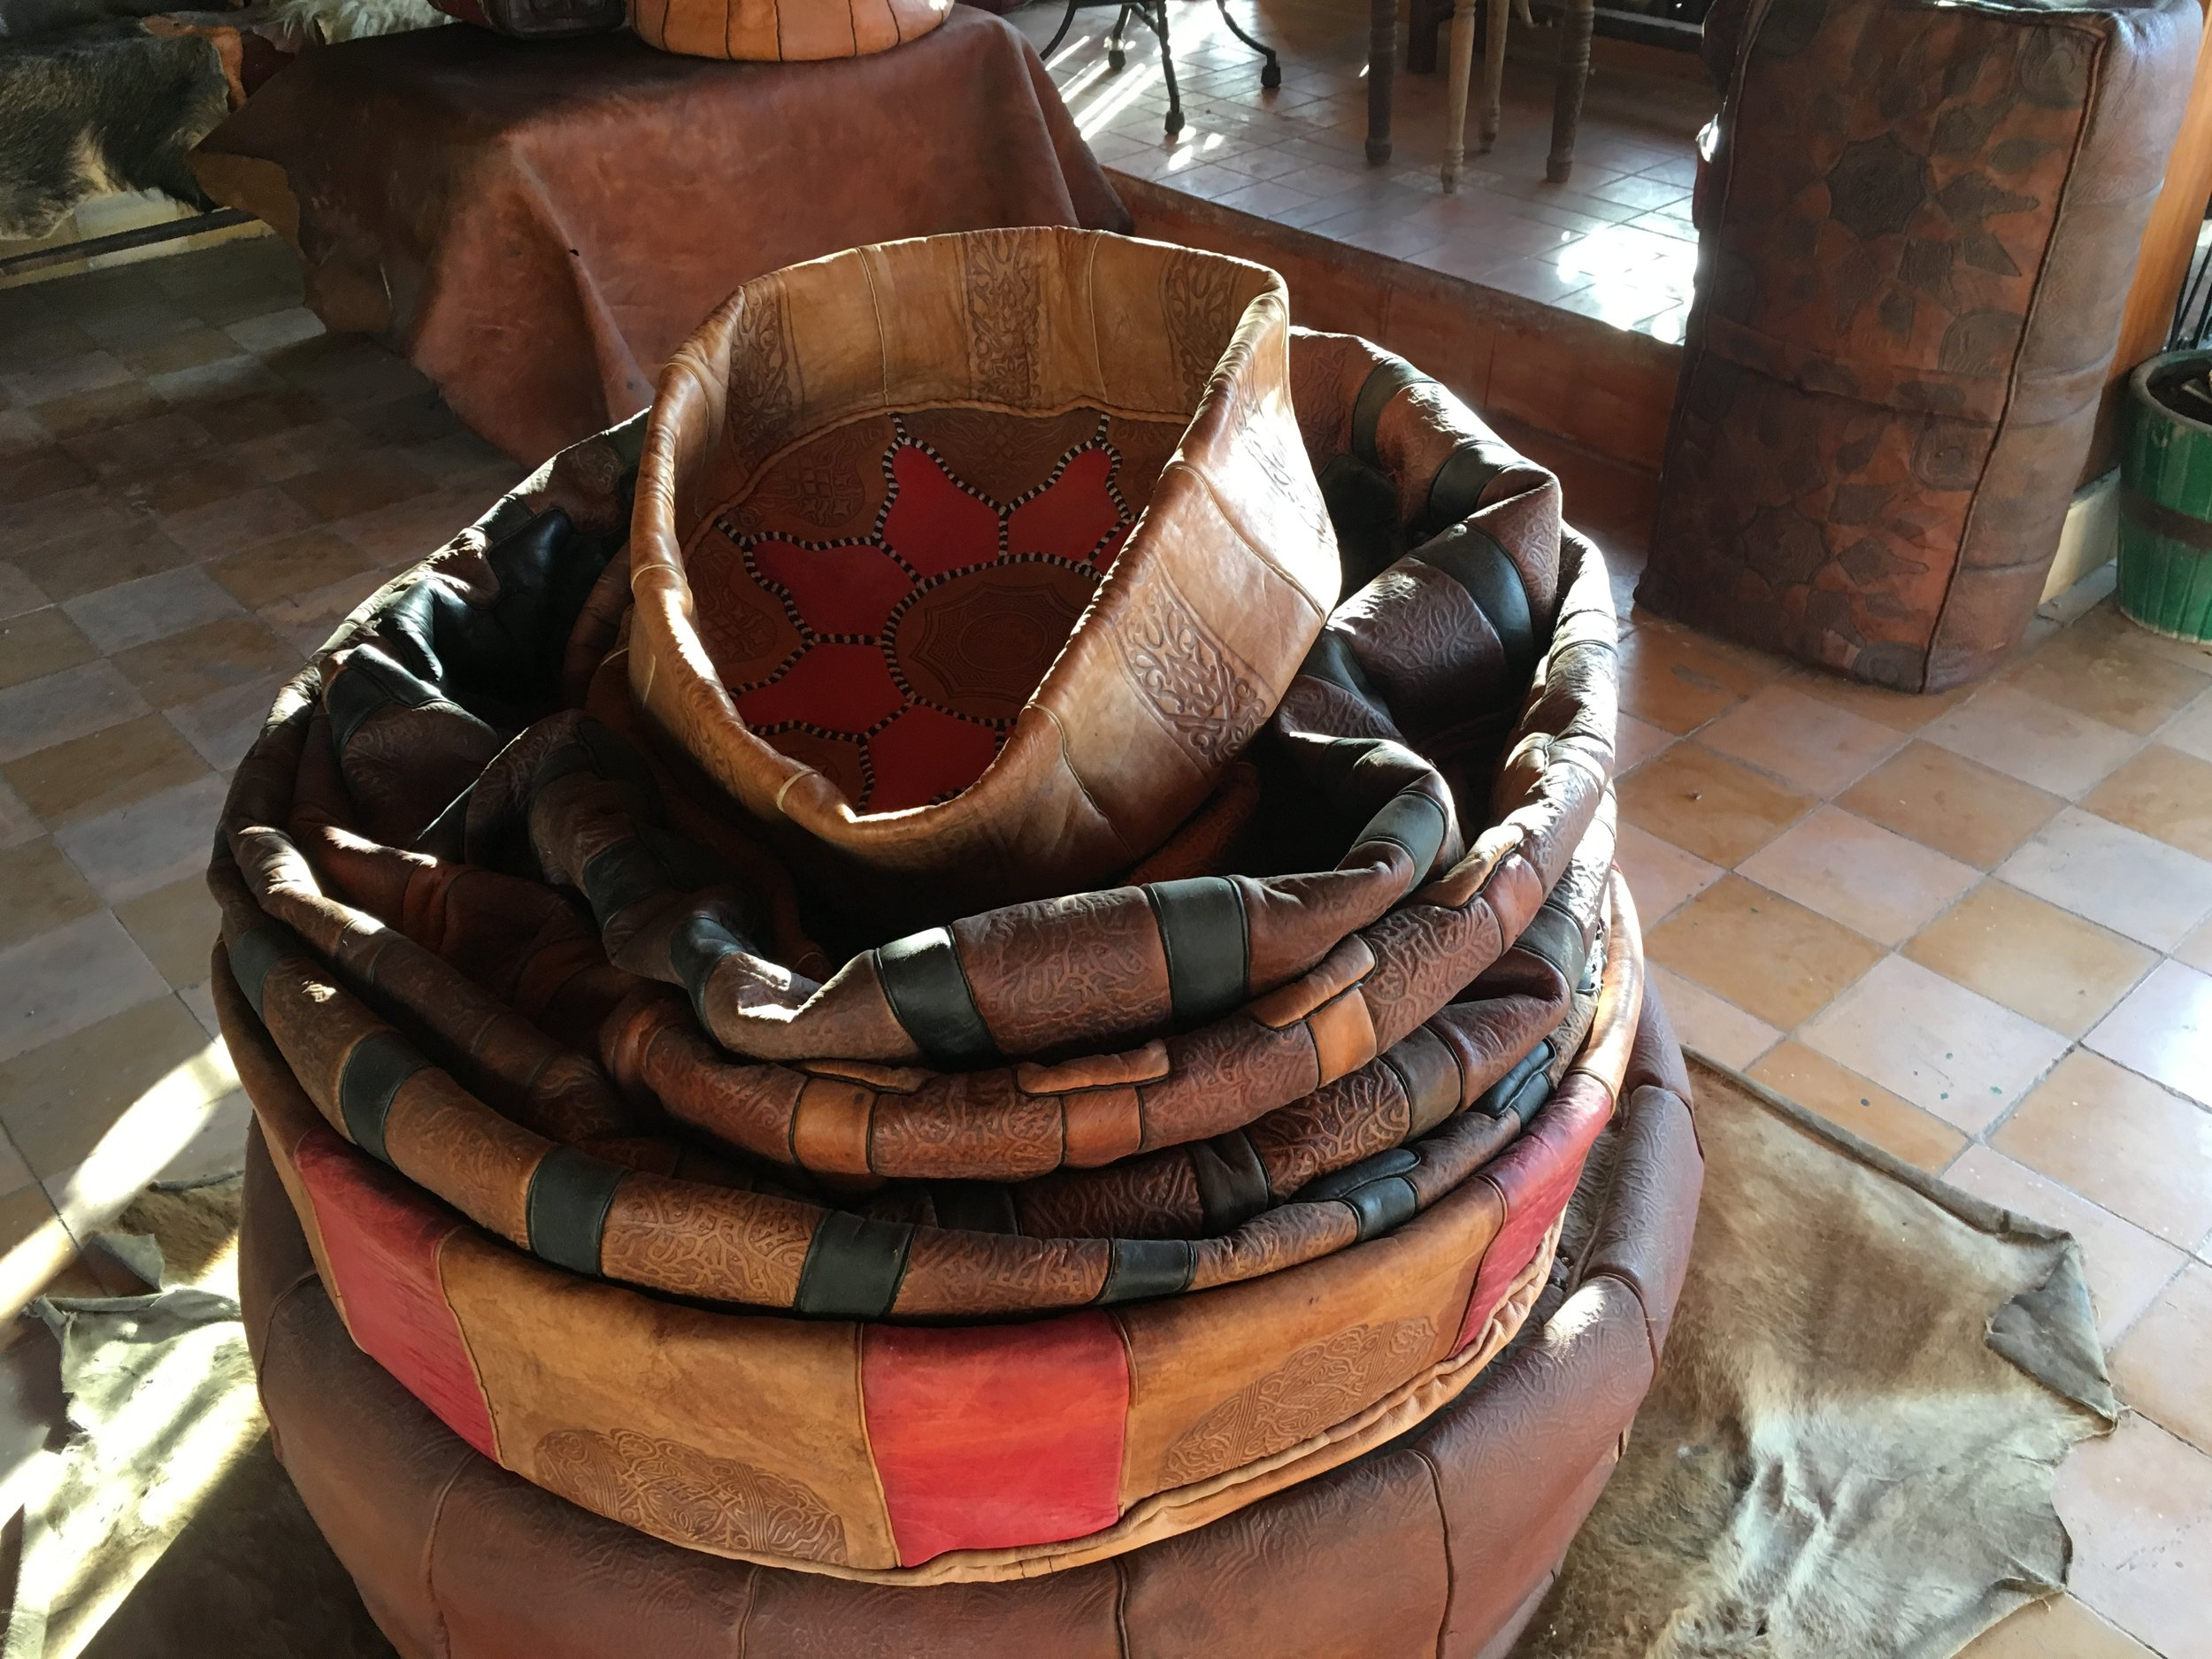 """Hand stitched """"poofs"""" are leather pillow covers of dyed and embossed leather are used to sit on at low tables in many Moroccan restaurants and tea houses. Megan bought one she'll stuff with cotton batting at home then put in her classroom's reading nook."""